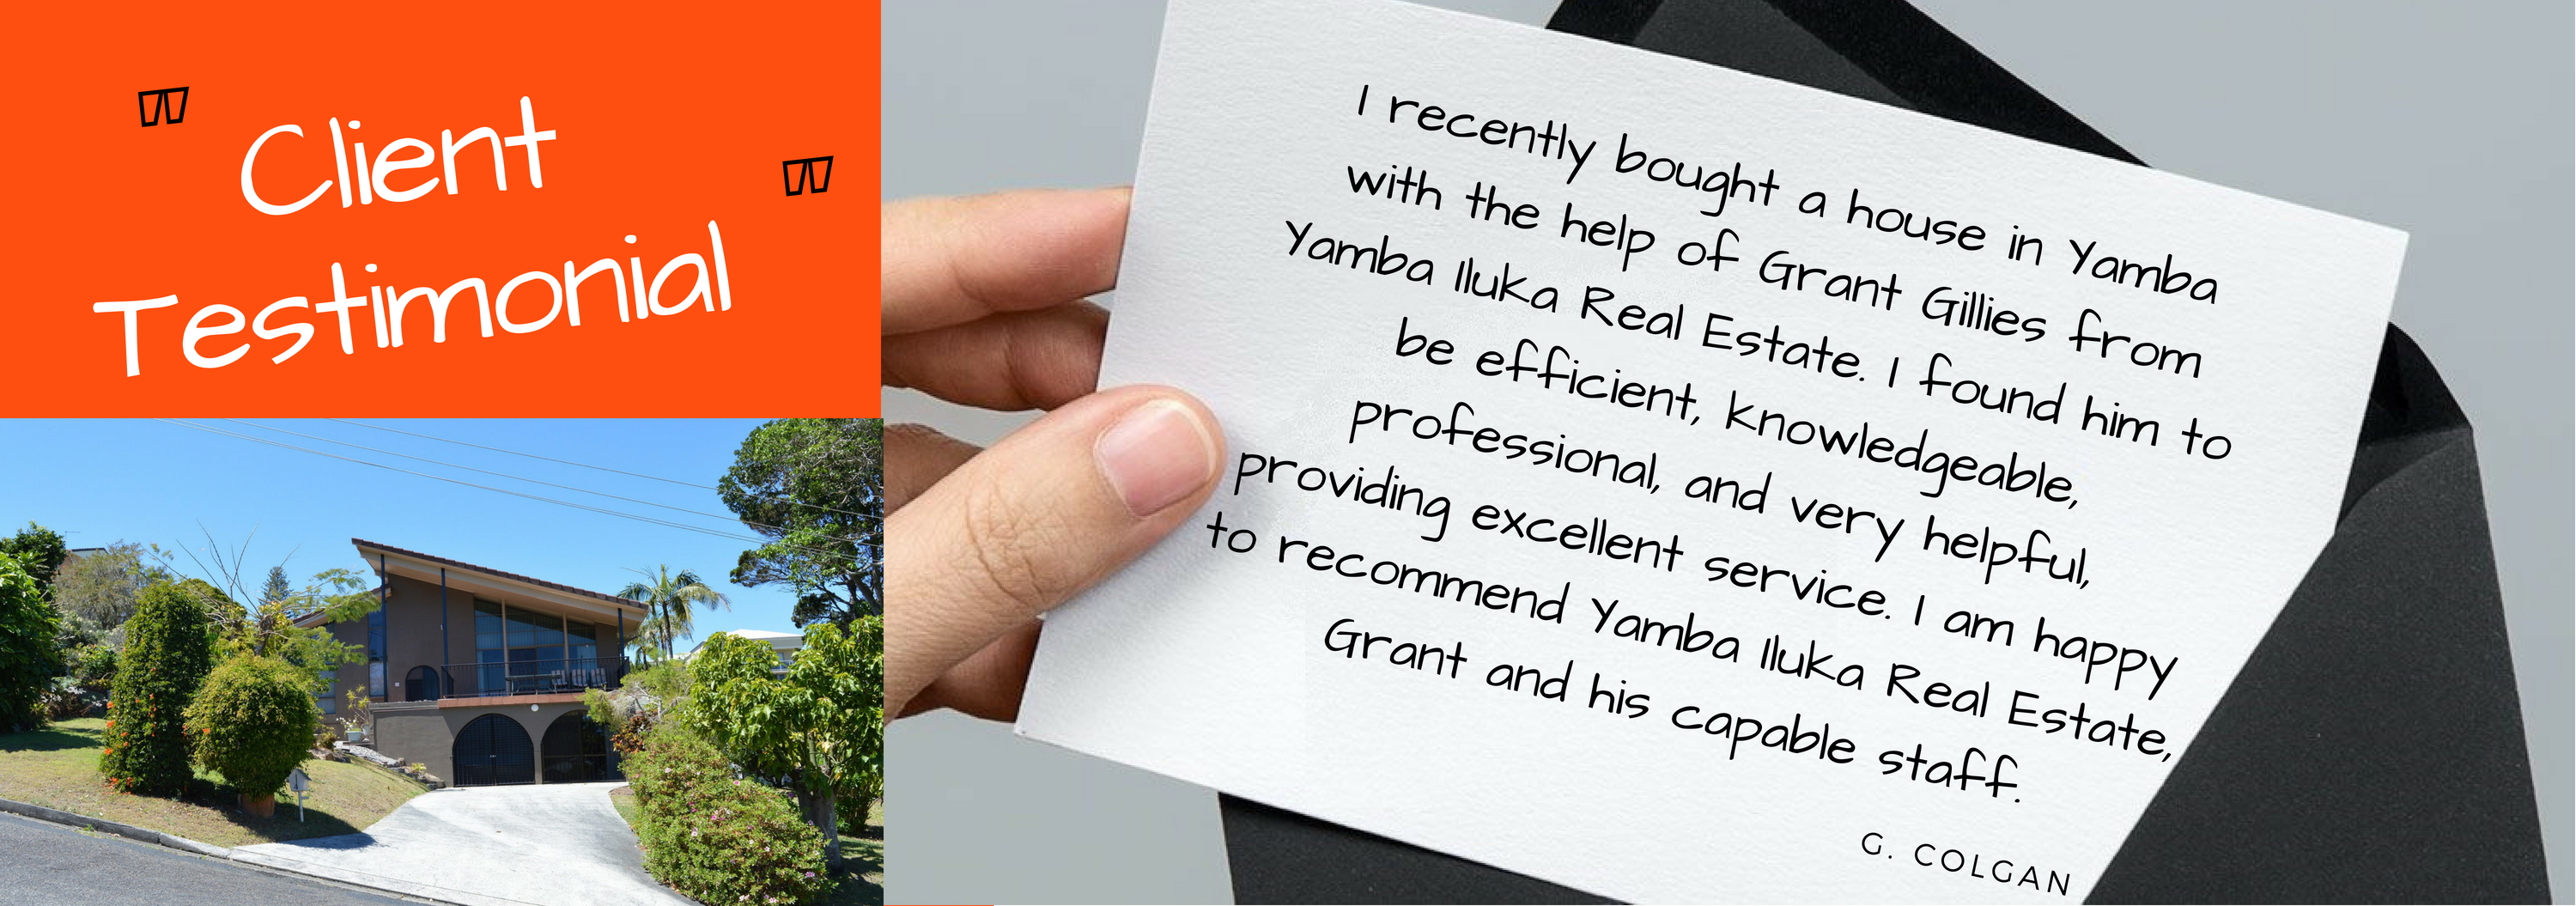 I recently bought a house in Yamba with the help of Grant Gillies from Yamba Iluka Real Estate. I found him to be efficient, knowledgeable, professional, and very helpful, providing excellent service. I am happy to recommend Yamba Iluka Real Estate, Grant and his capable staff. G Colgan